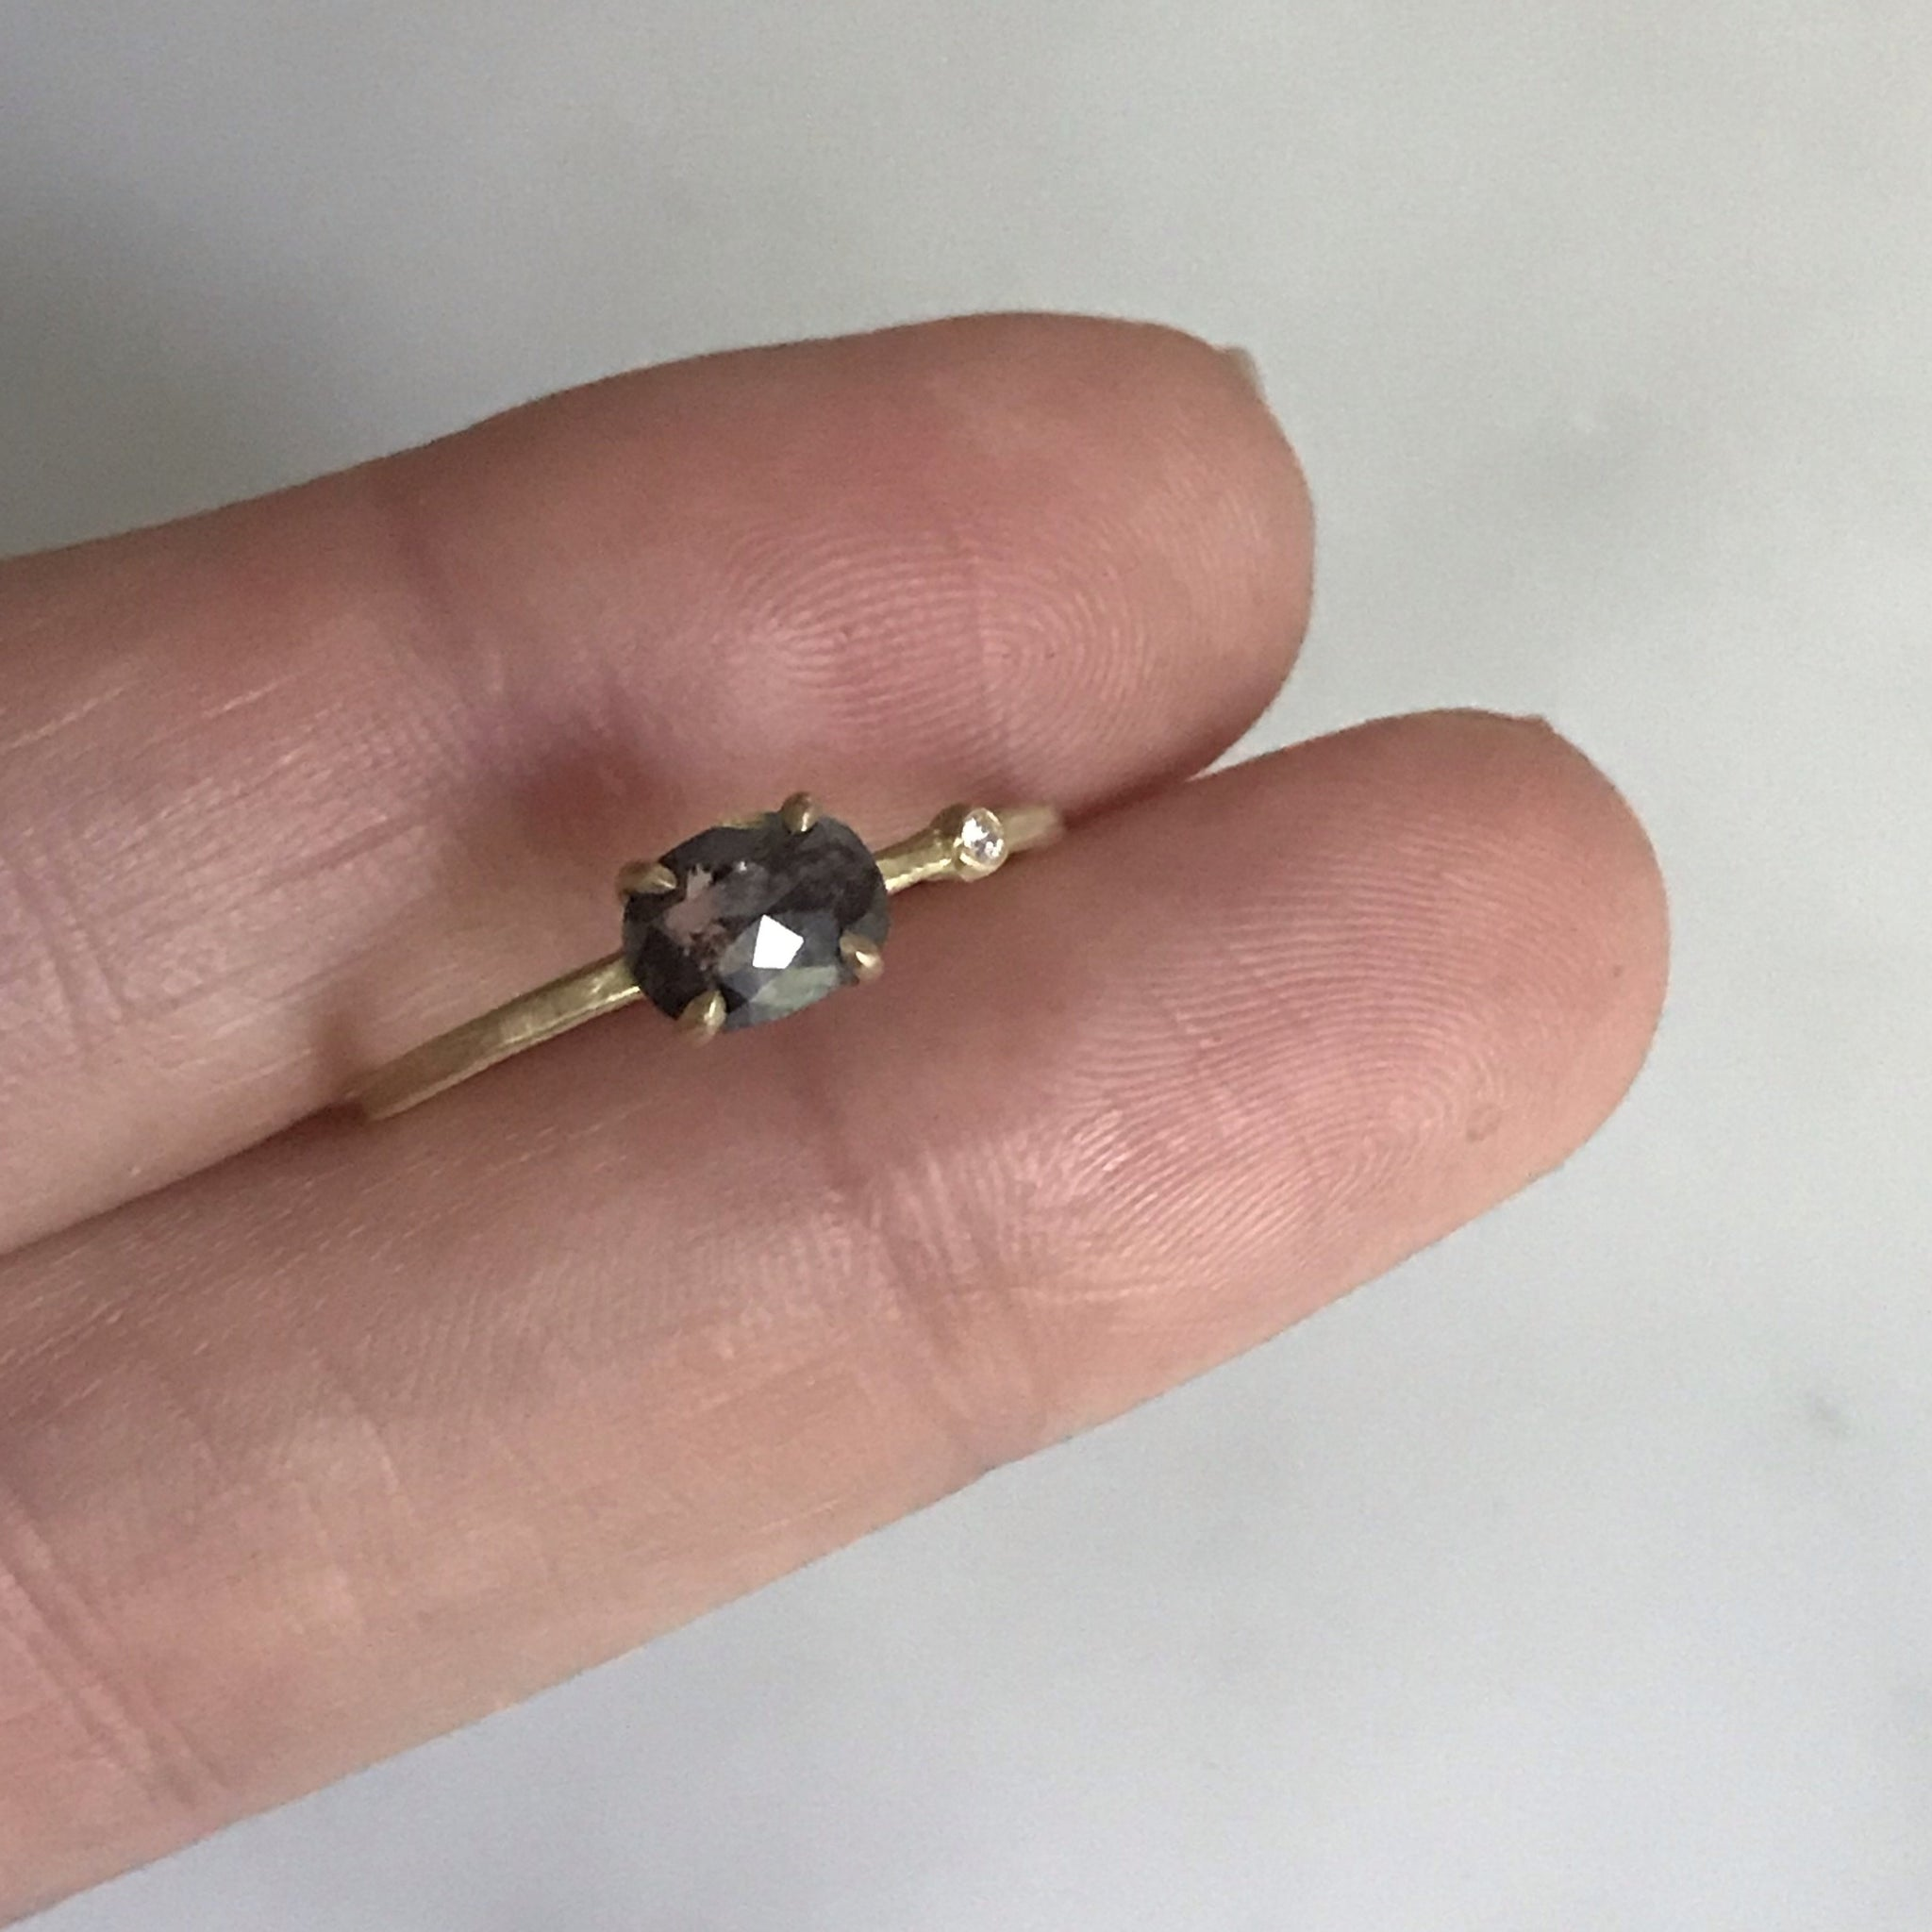 salt + pepper diamond wink ring in 14k gold